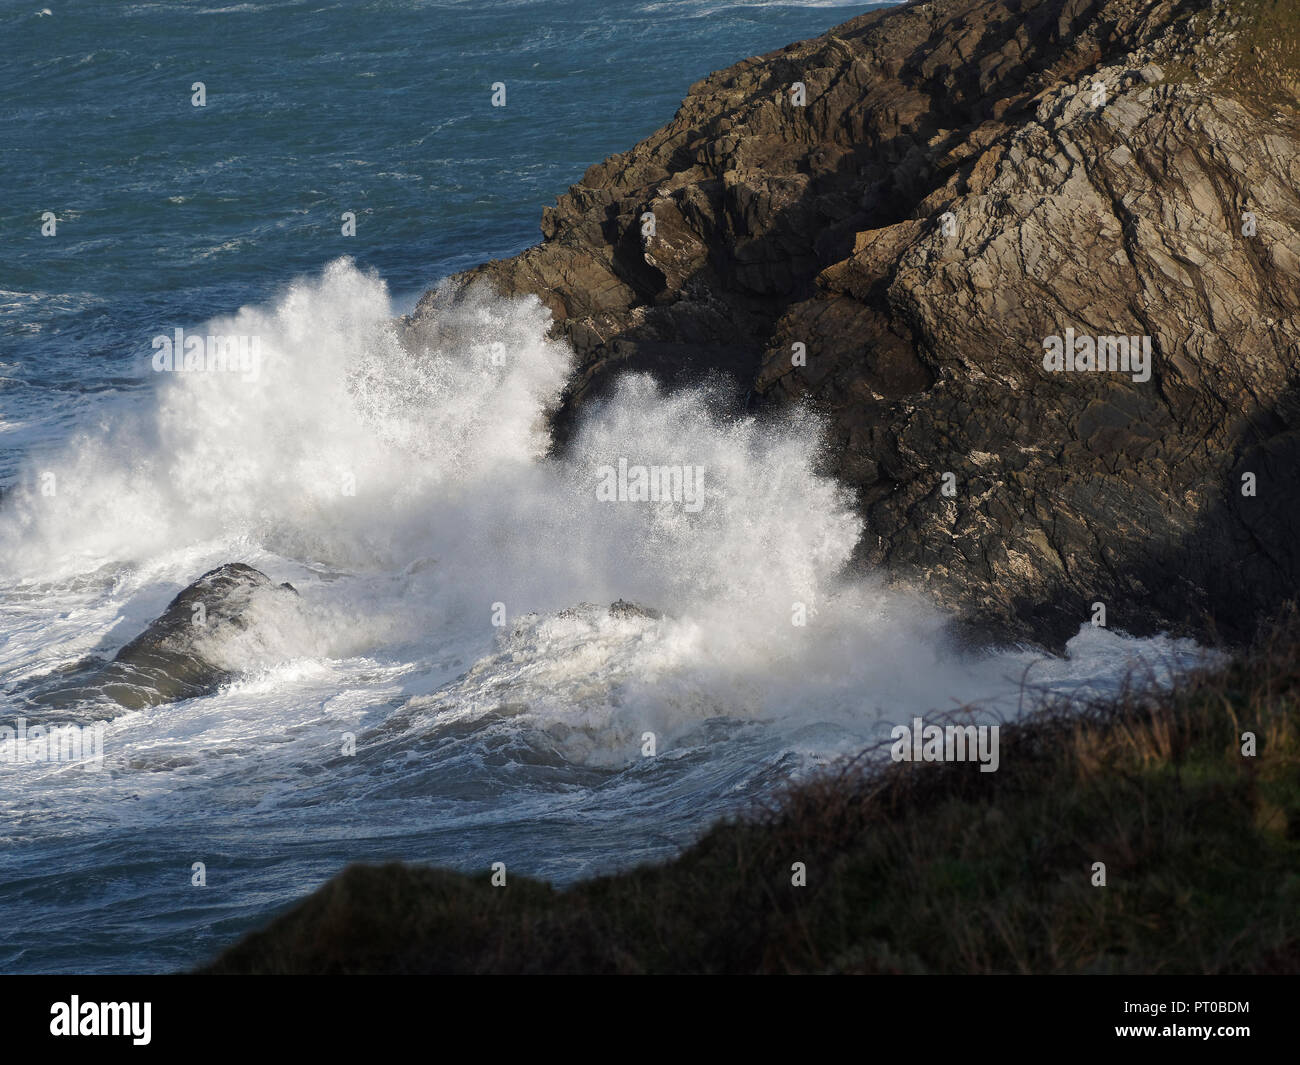 Waves unlit powerfull crash at Lewinnick cove Newquay cornwall UK - Stock Image